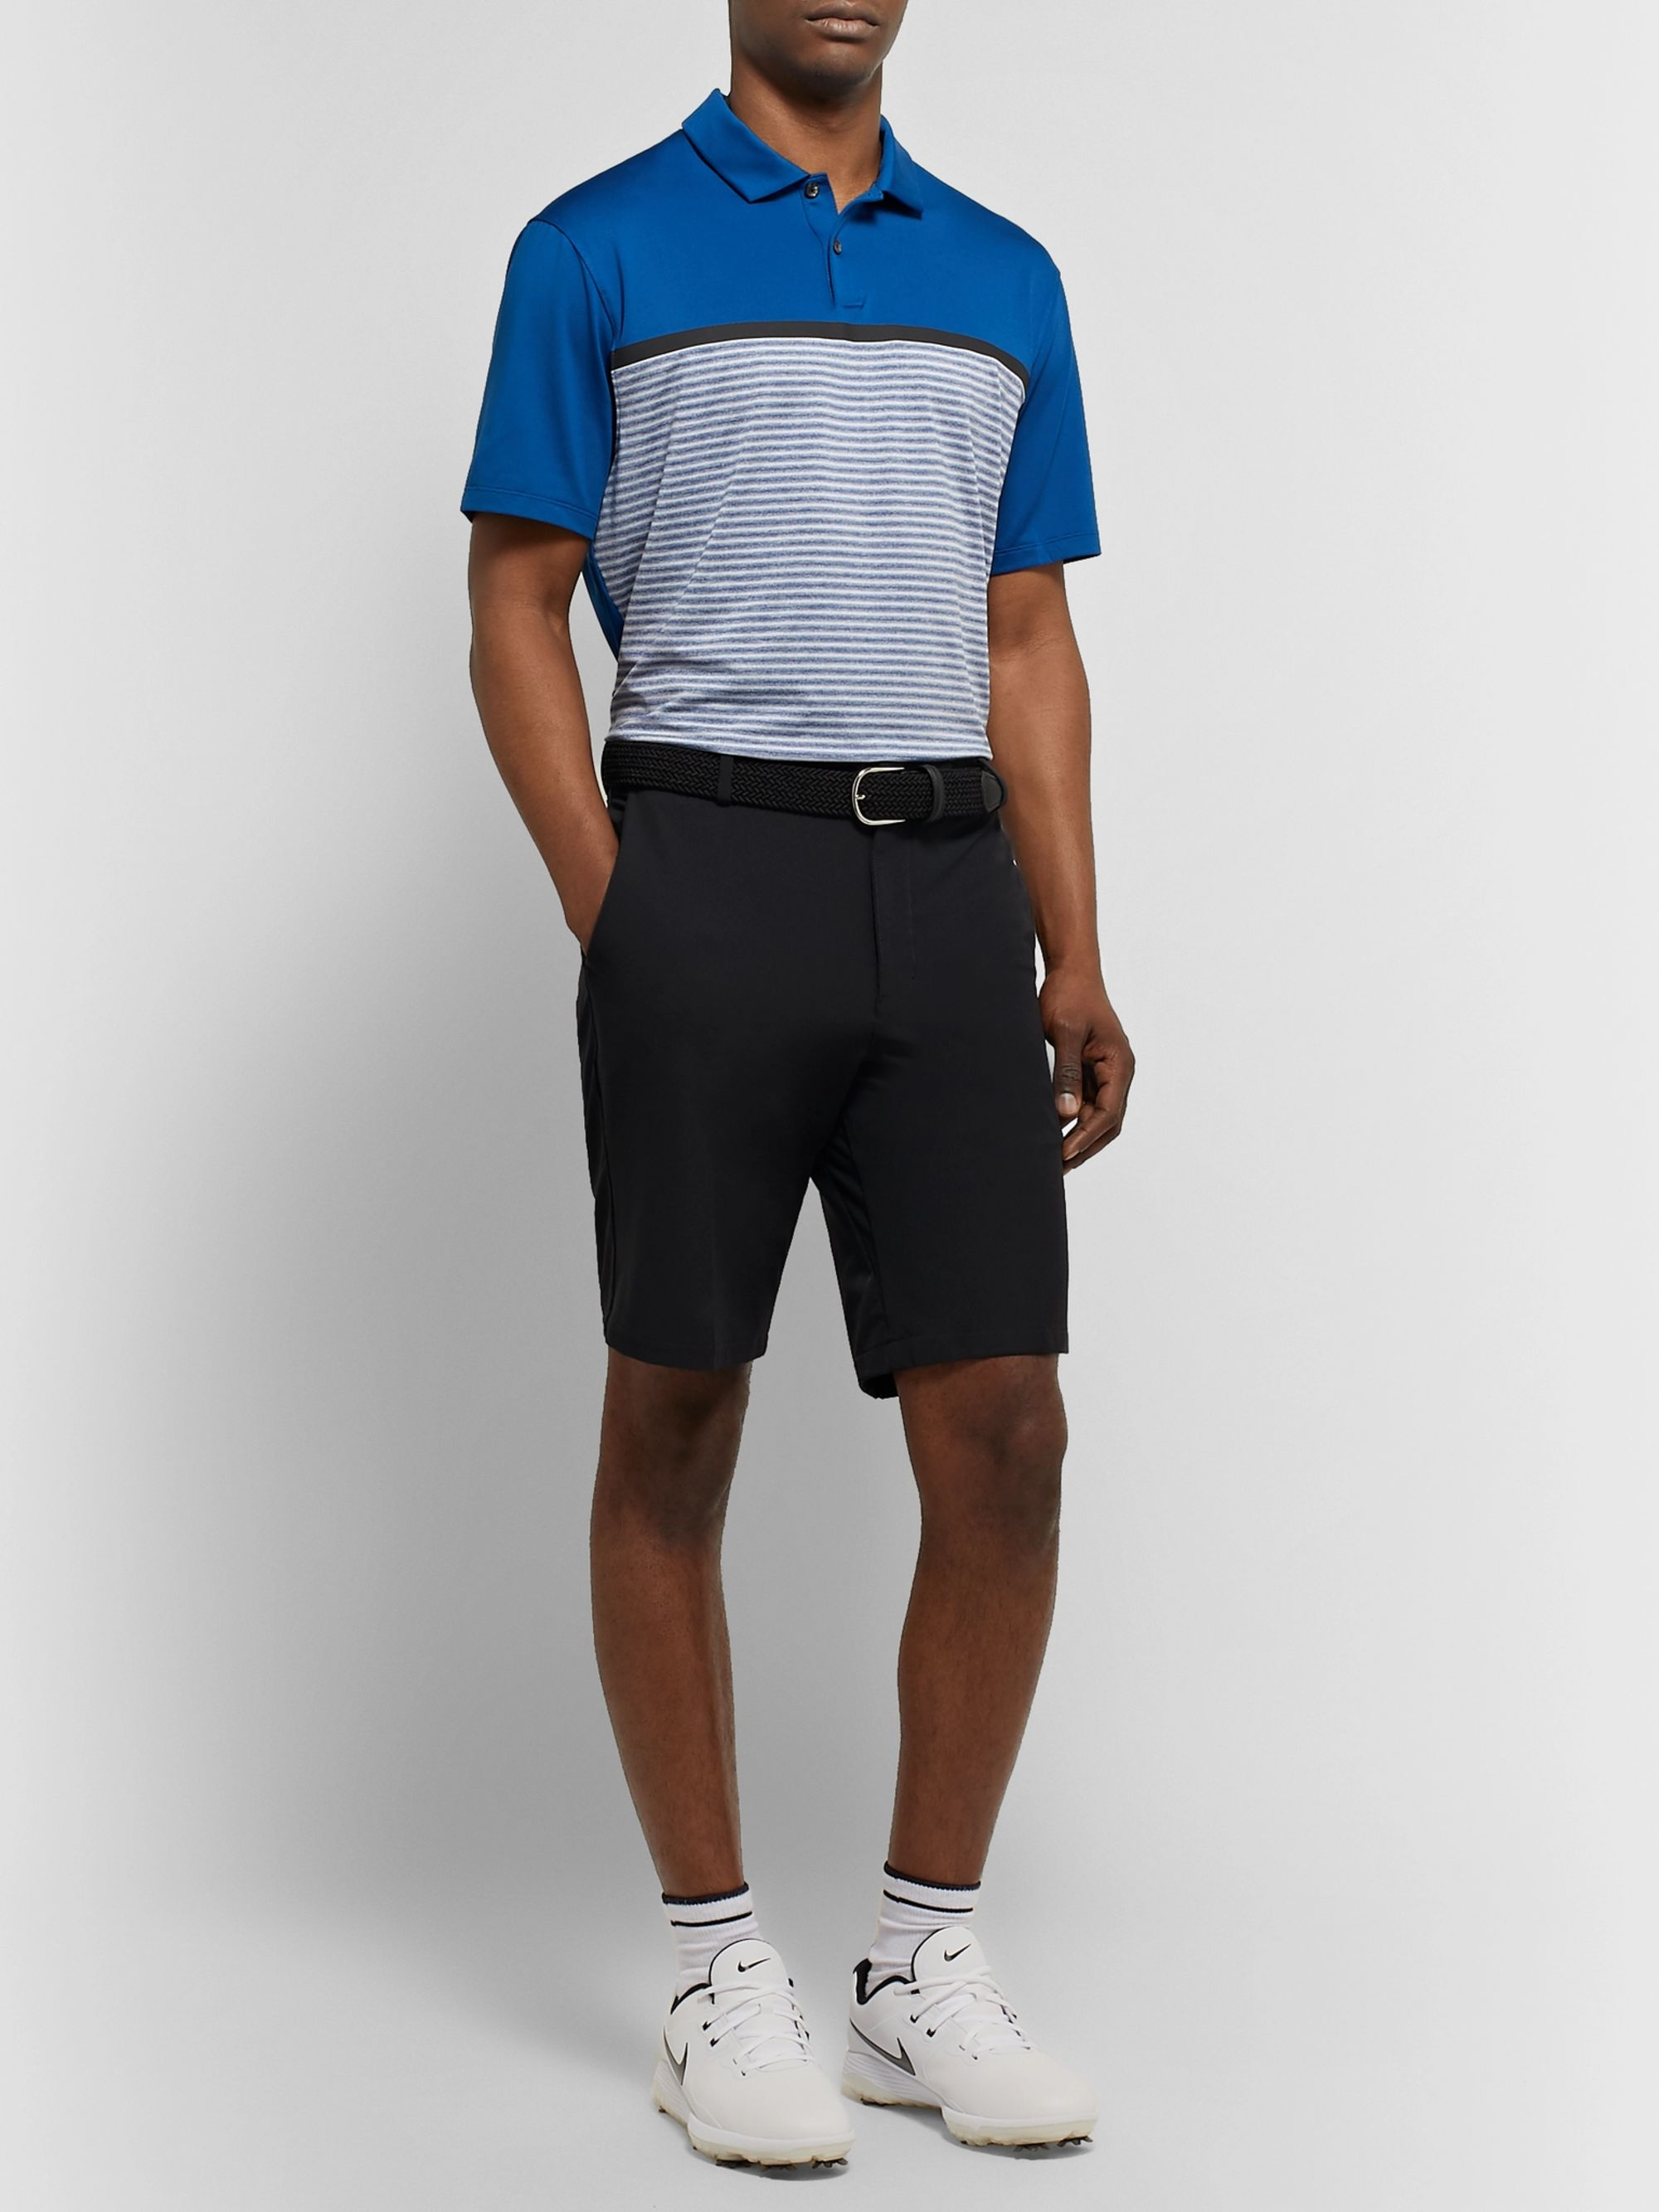 Nike Golf Tiger Woods Vapor Striped Dri-FIT Polo Shirt